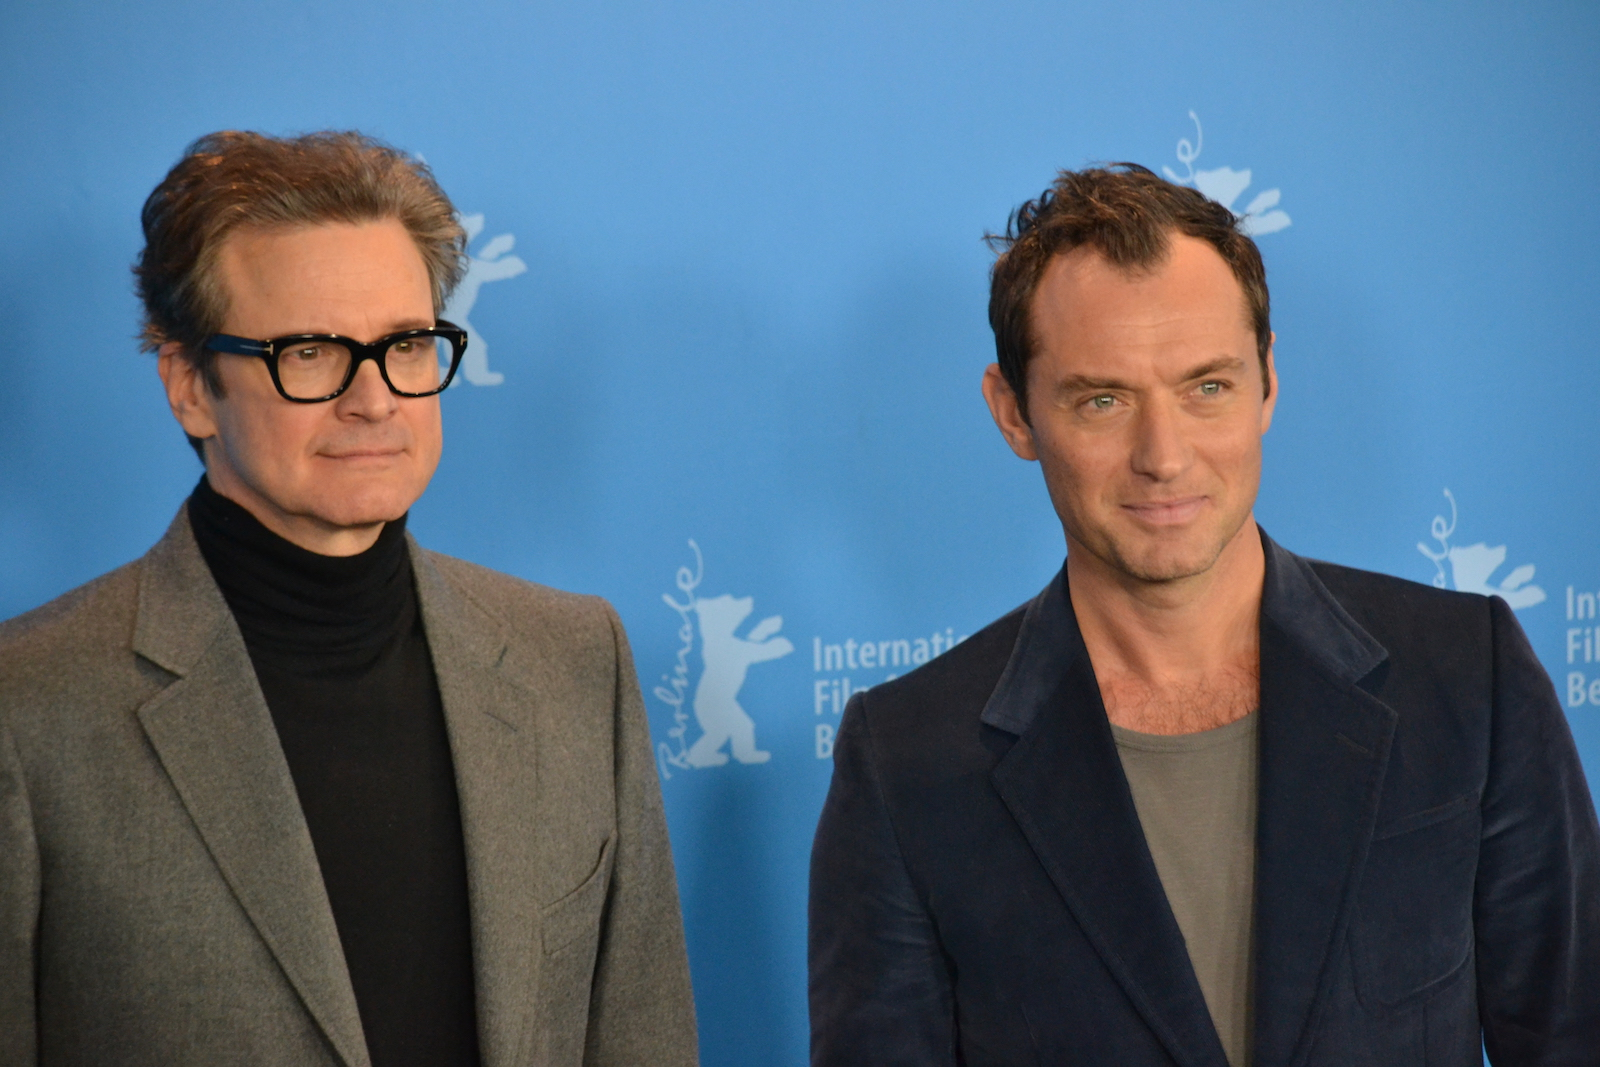 Berlino 2016: Jude Law e Colin Firth posano al photocall di Genius